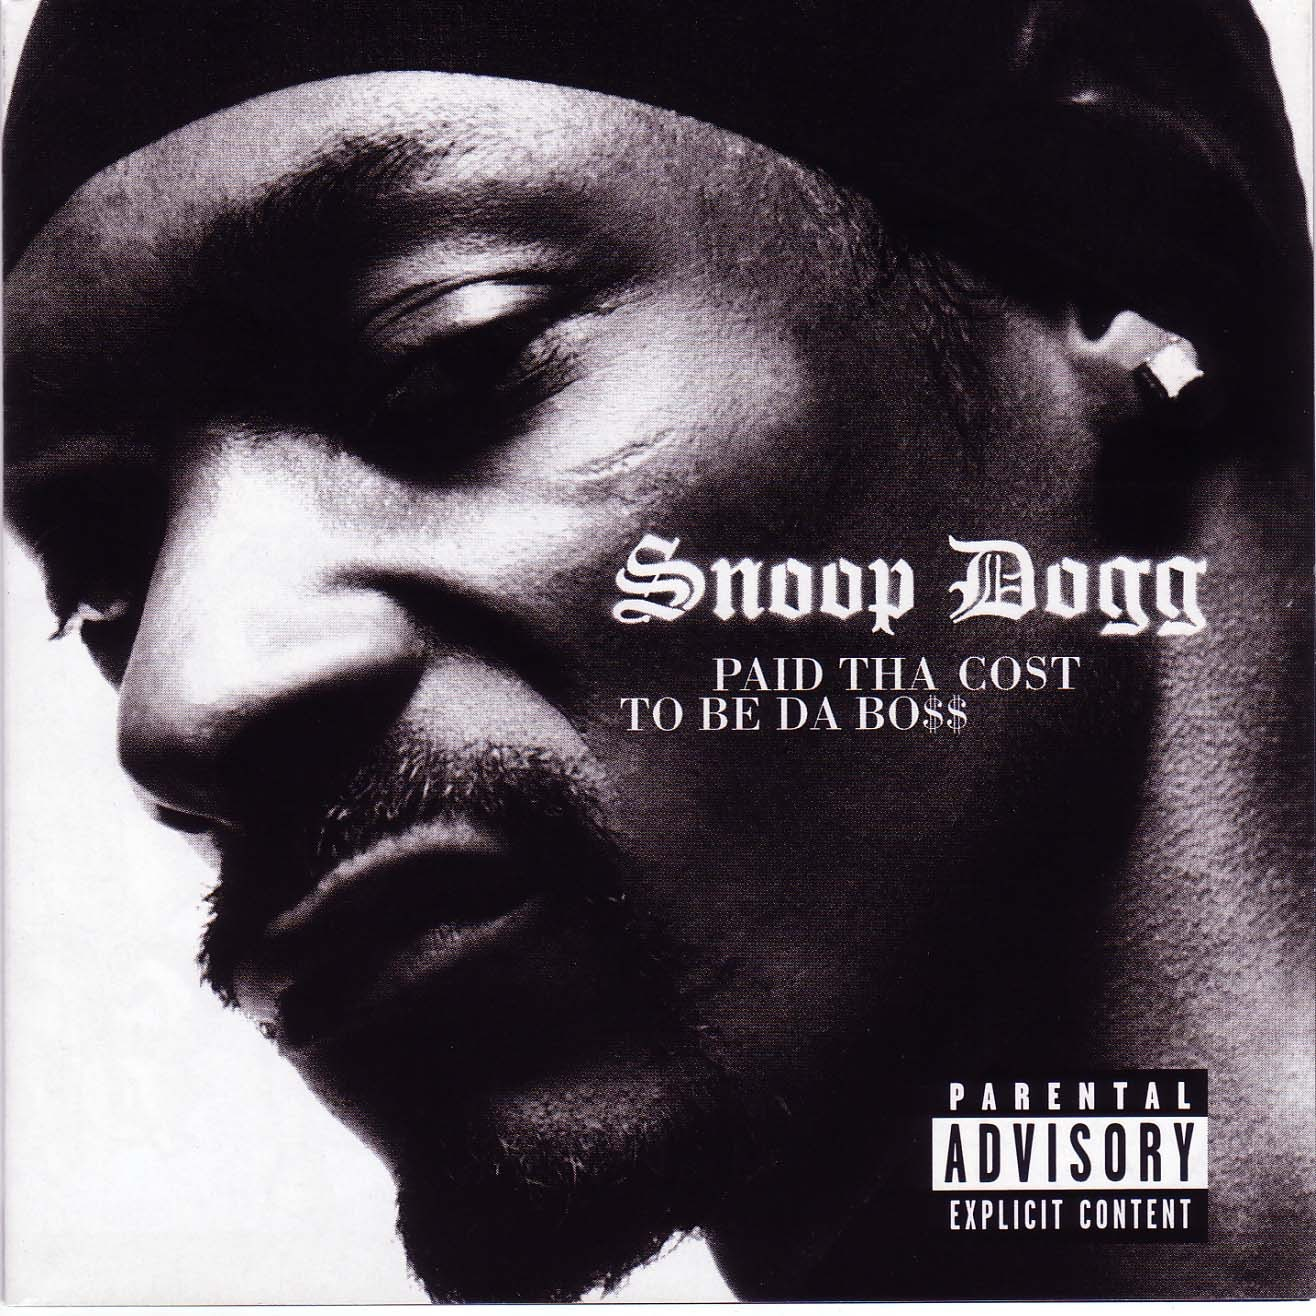 סנופ דוג אלבום Snoop Dogg album